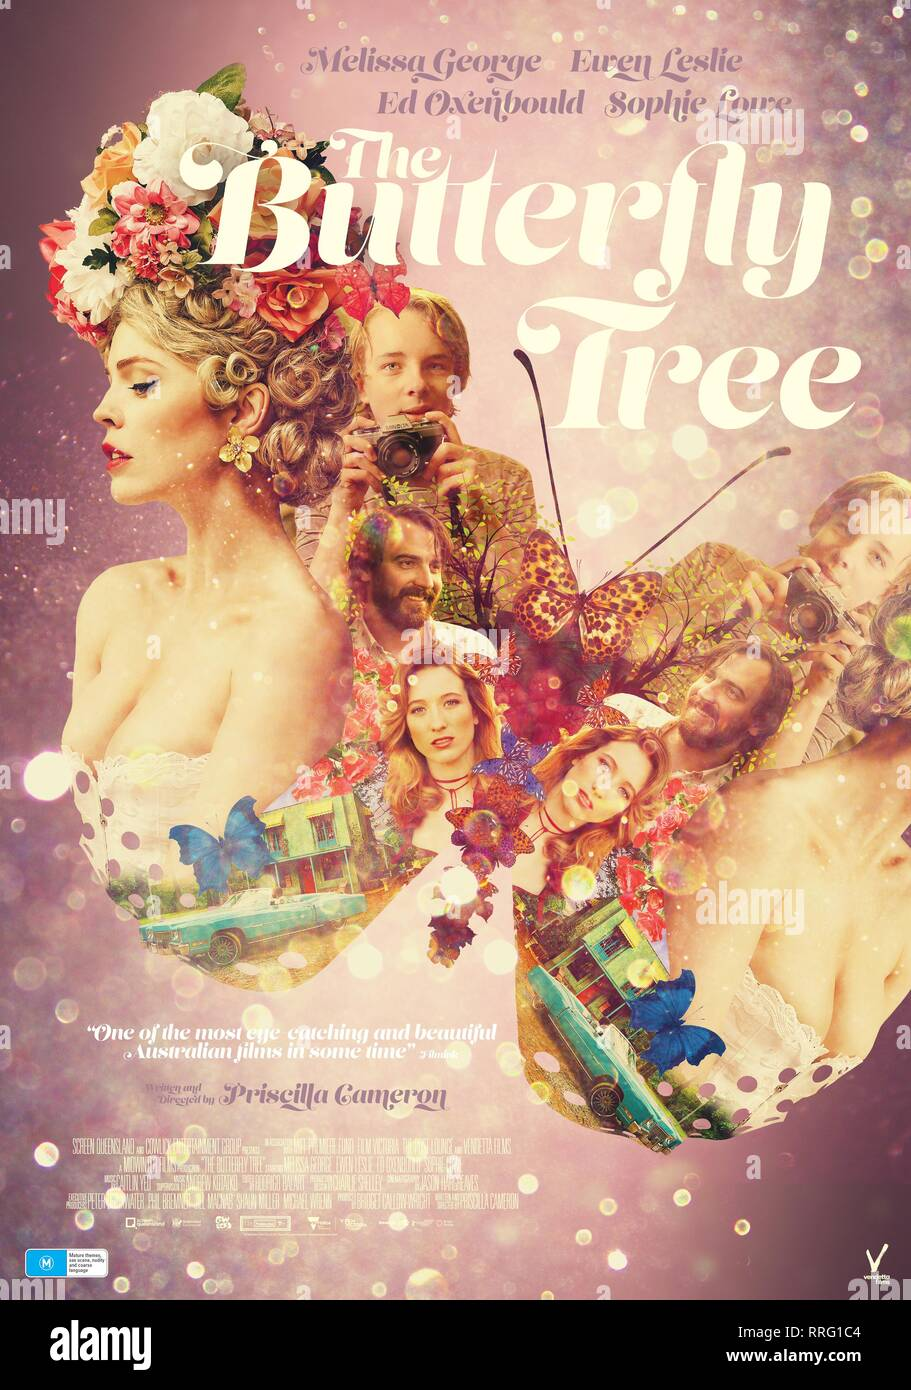 THE BUTTERFLY TREE, MOVIE POSTER, 2017 - Stock Image